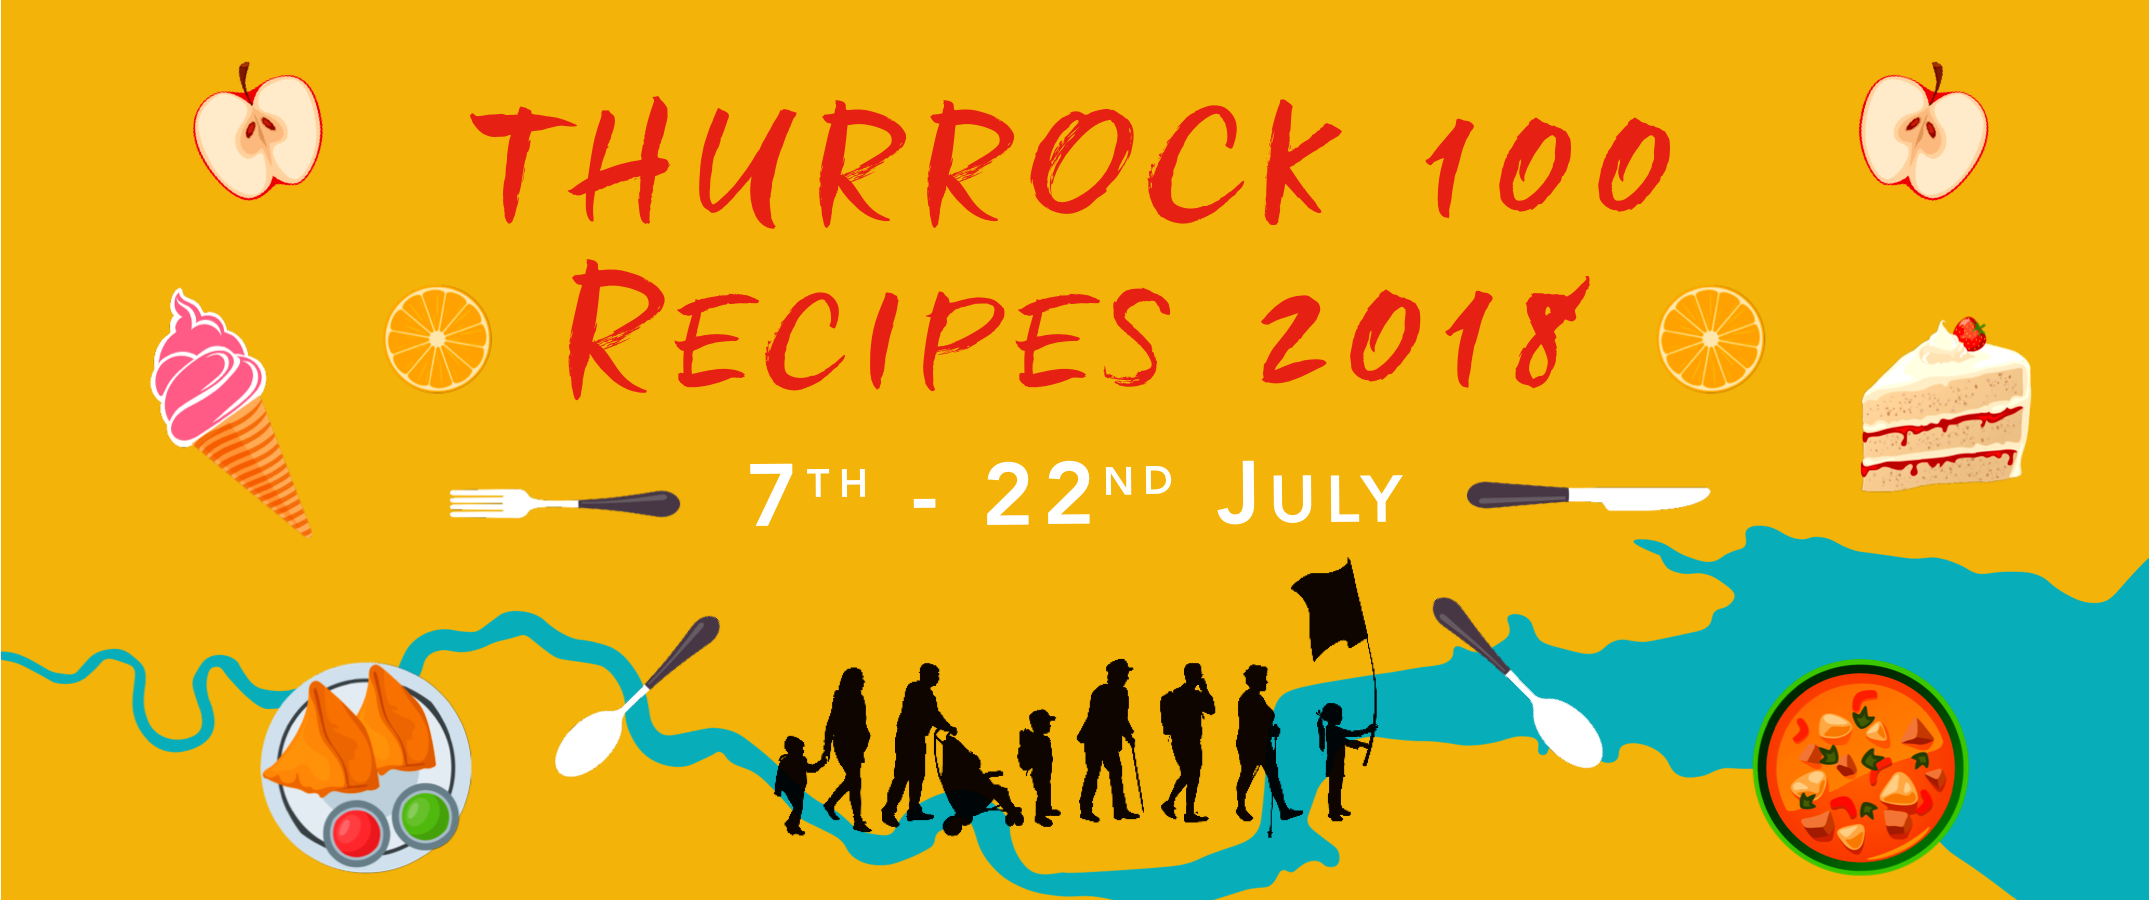 Thurrock 100 is now over for another year!